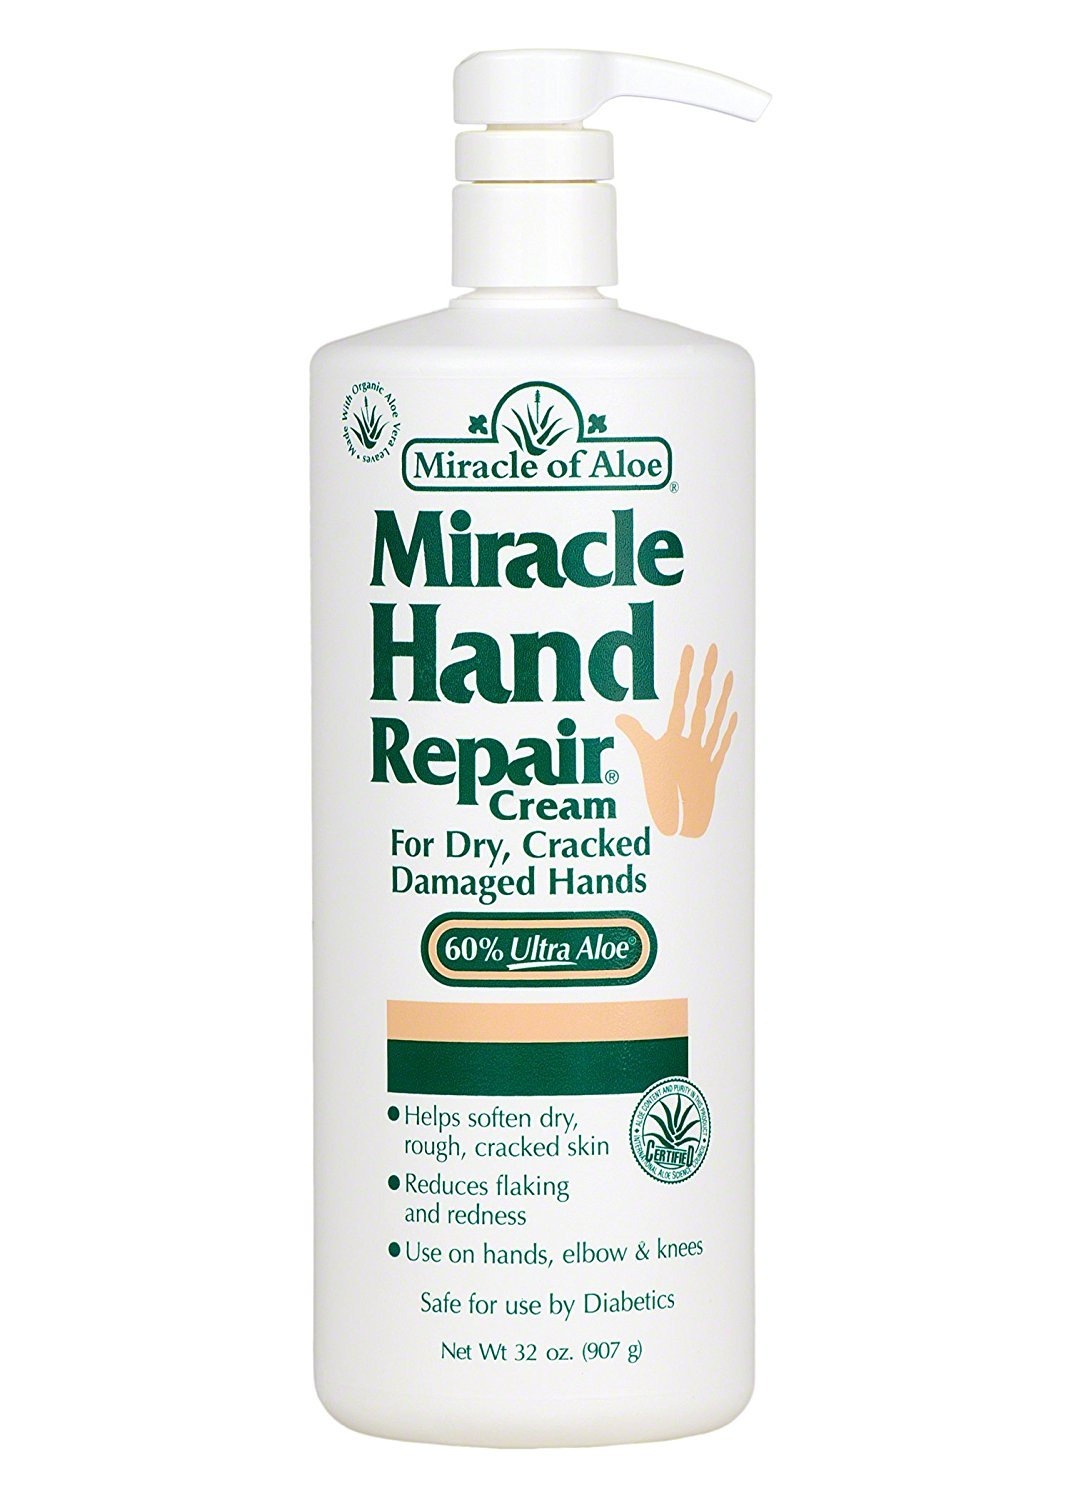 Miracle of Aloe, Miracle Hand Repair Cream with 60% UltraAloe 32 ounce bottle with pump